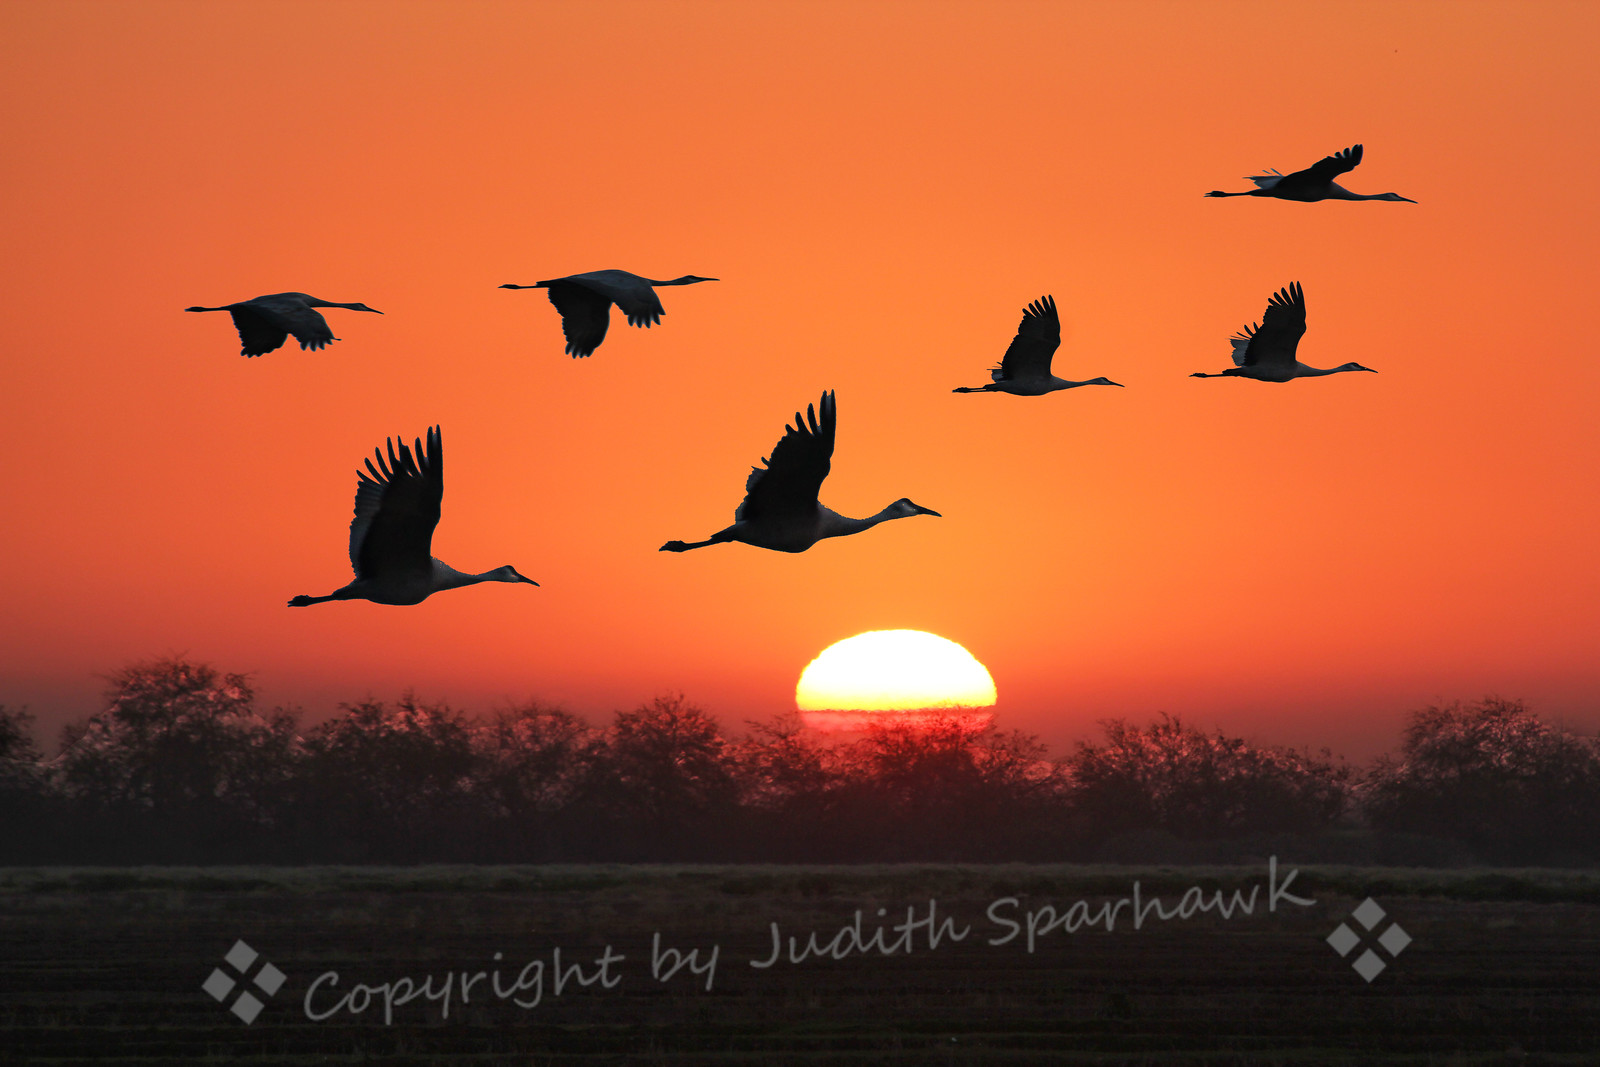 Cranes in the Sunrise ~ These Sandhill Cranes were flying out to the grassy fields to feed for the day.  I arrived well before dawn, and could hear the thousands of Snow Geese and the cranes before I could see them.  Then the sun rose, and lit up the world.